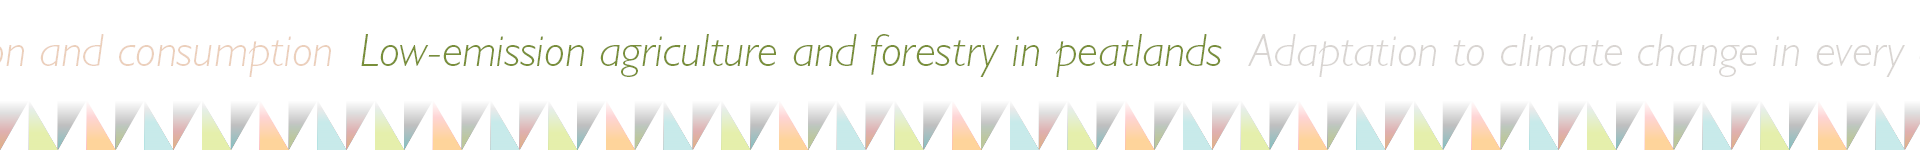 low-emission agriculture and forestry in peatlands